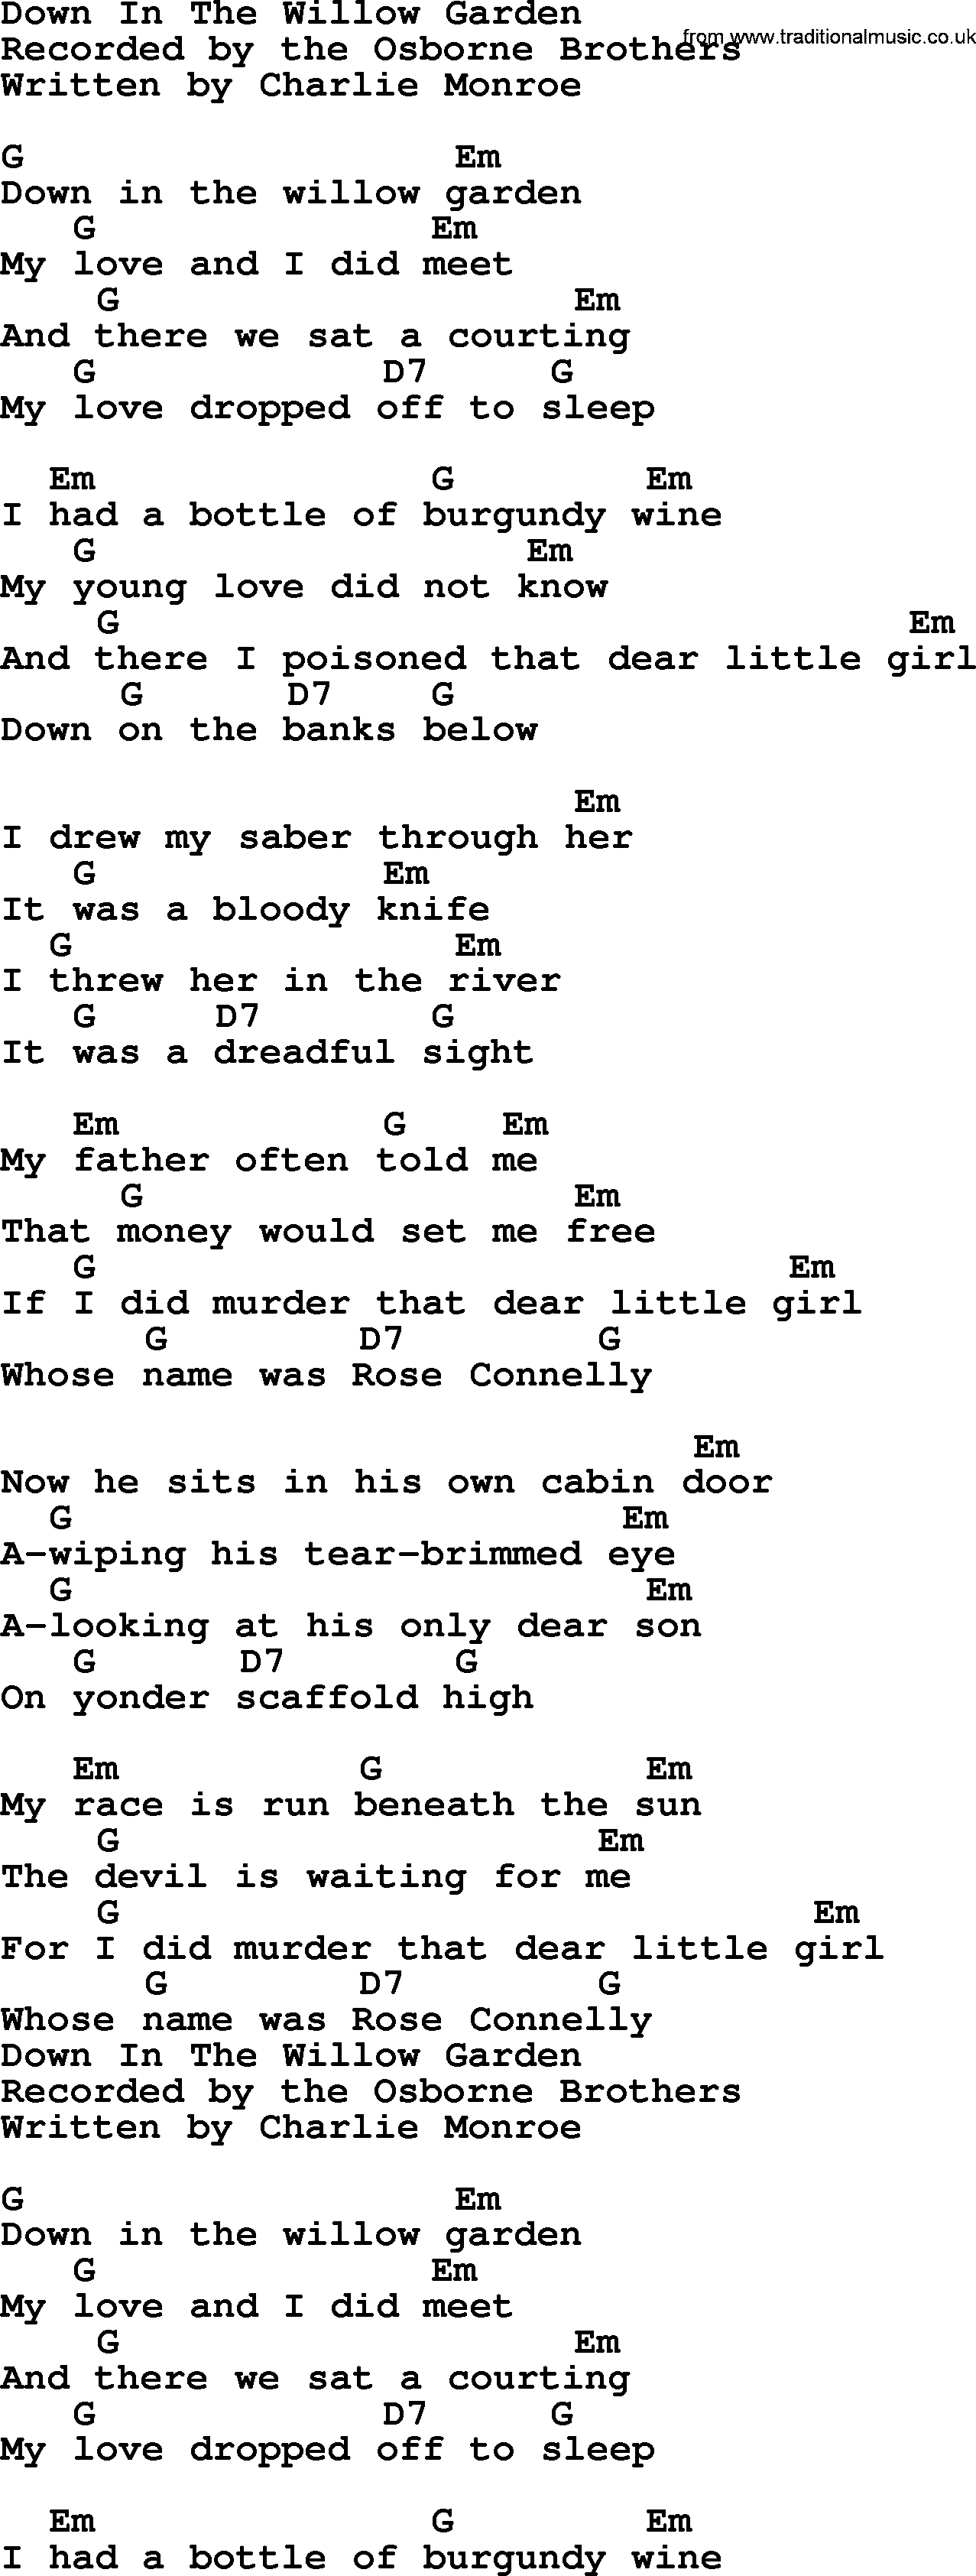 Down In The Willow Garden Bluegrass Lyrics With Chords